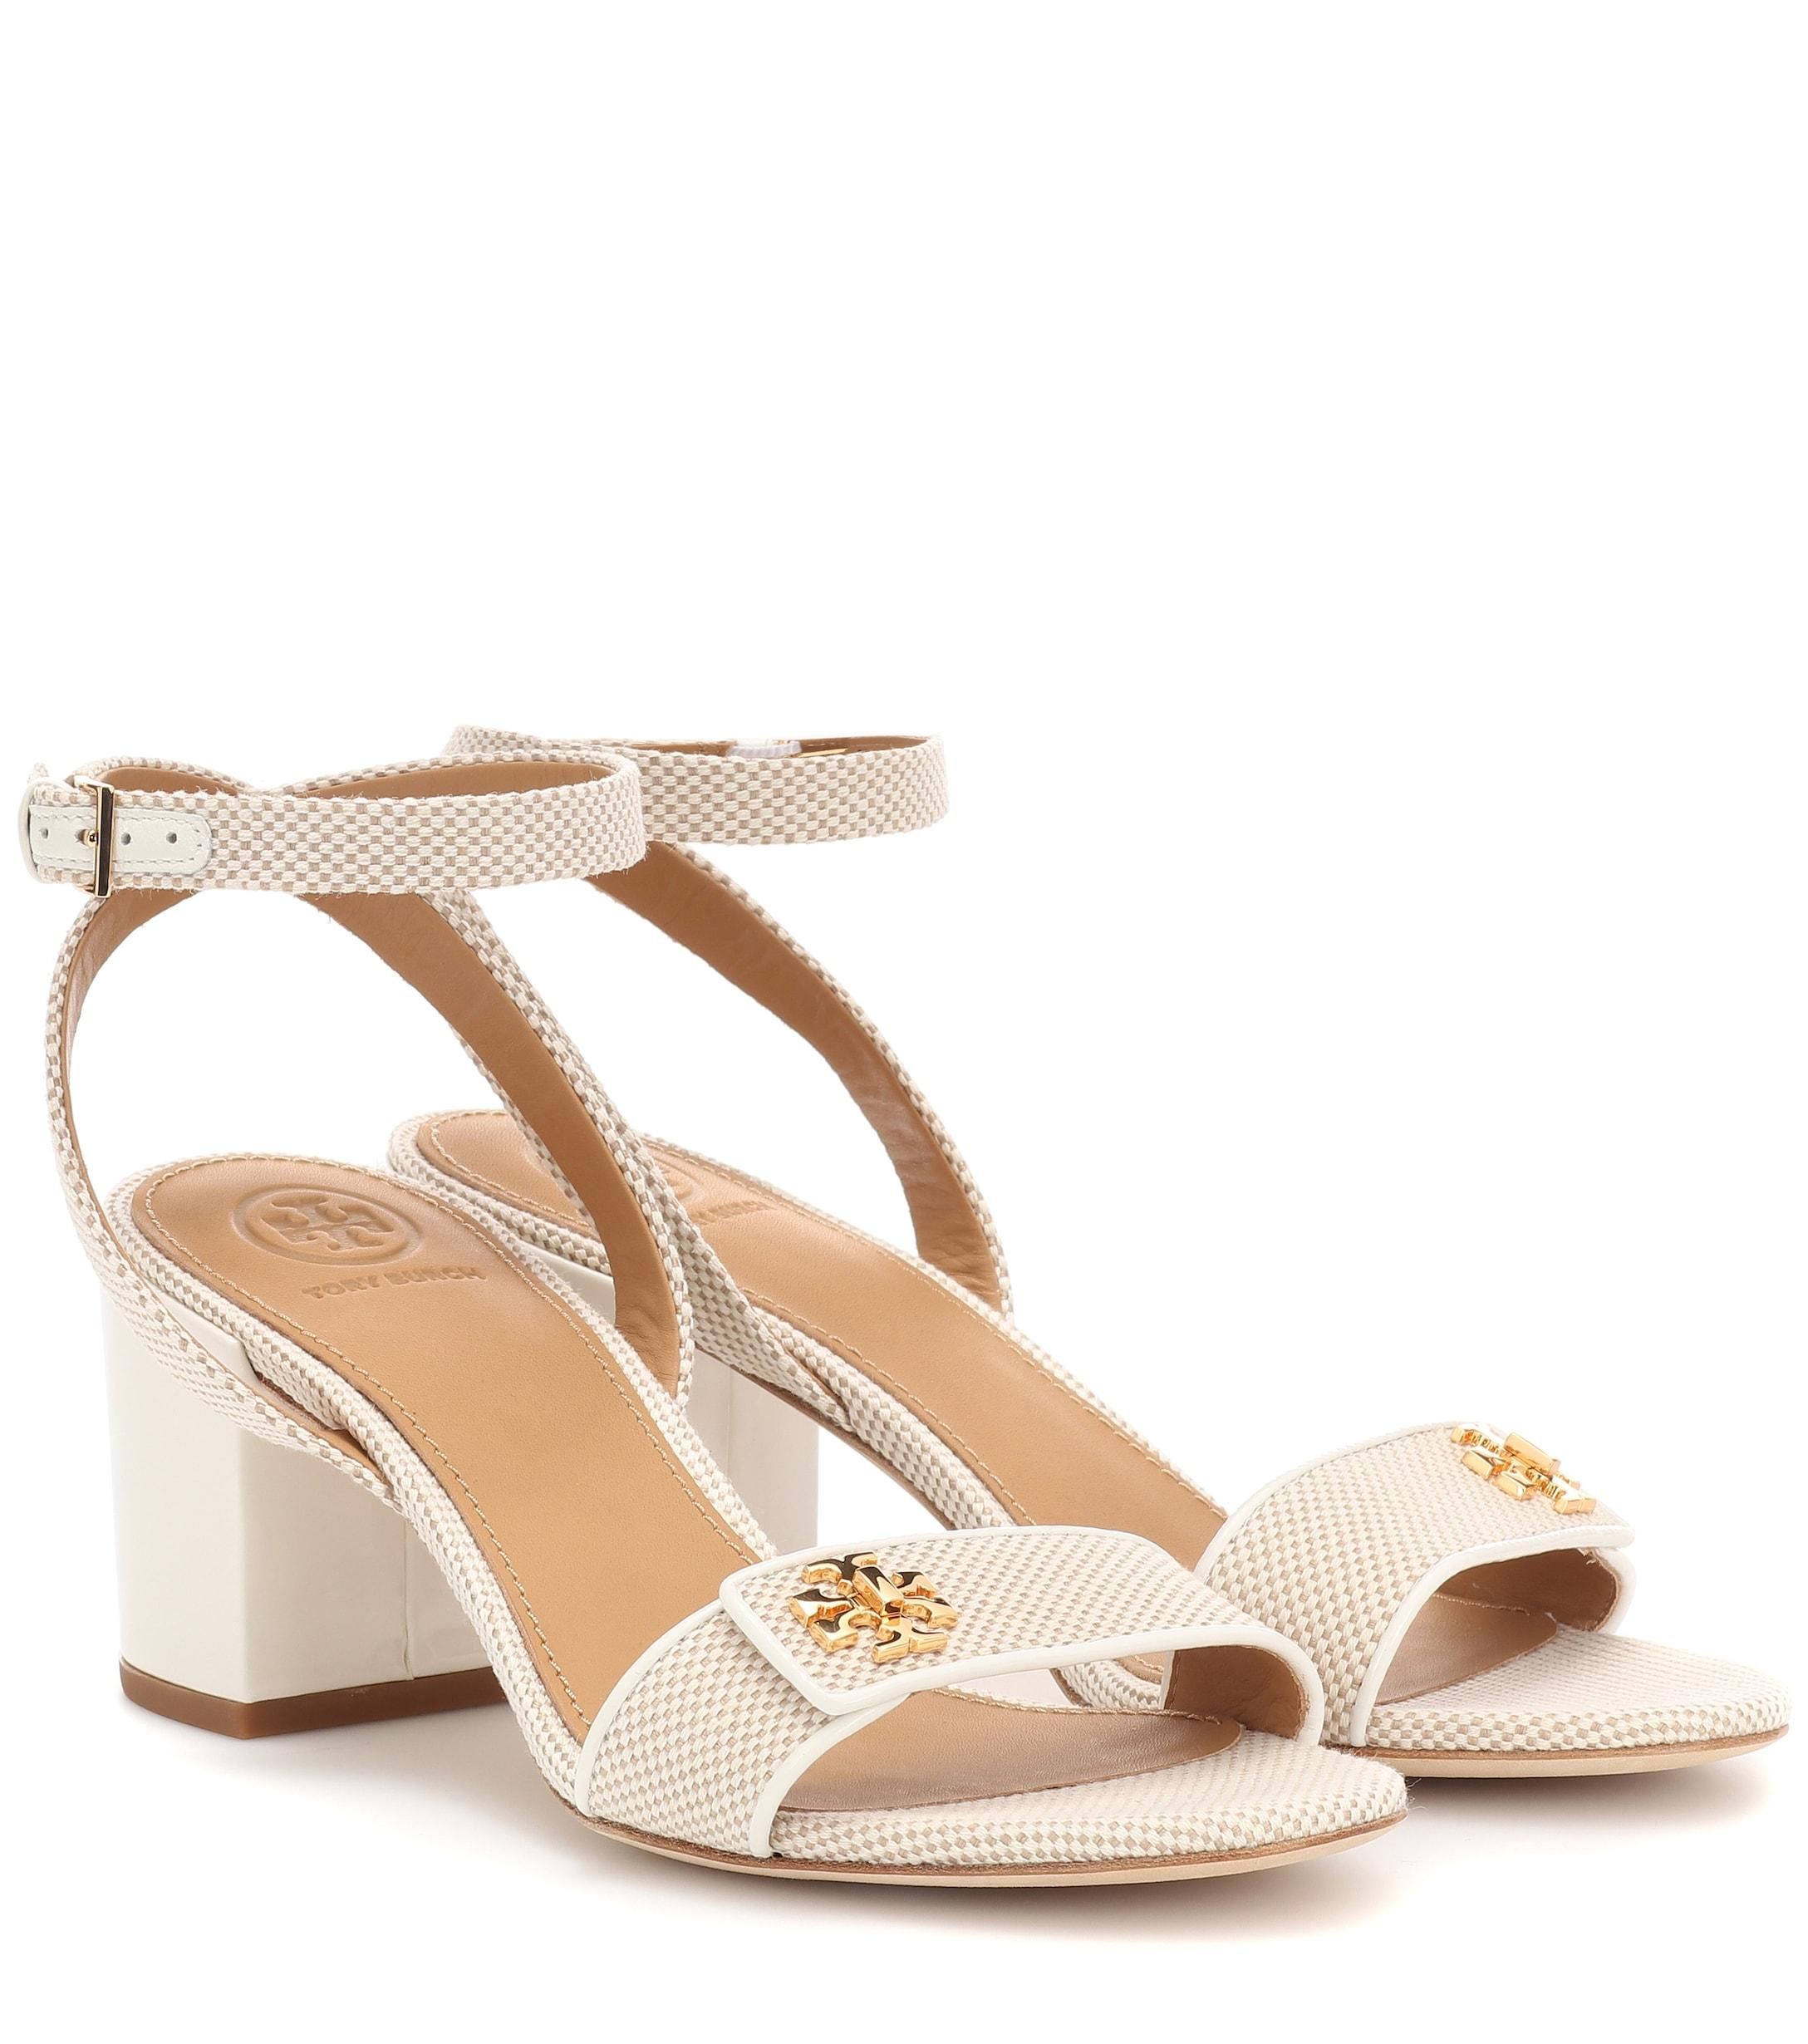 989a77997 Lyst - Tory Burch Kira Leather-trimmed Canvas Sandals in Natural